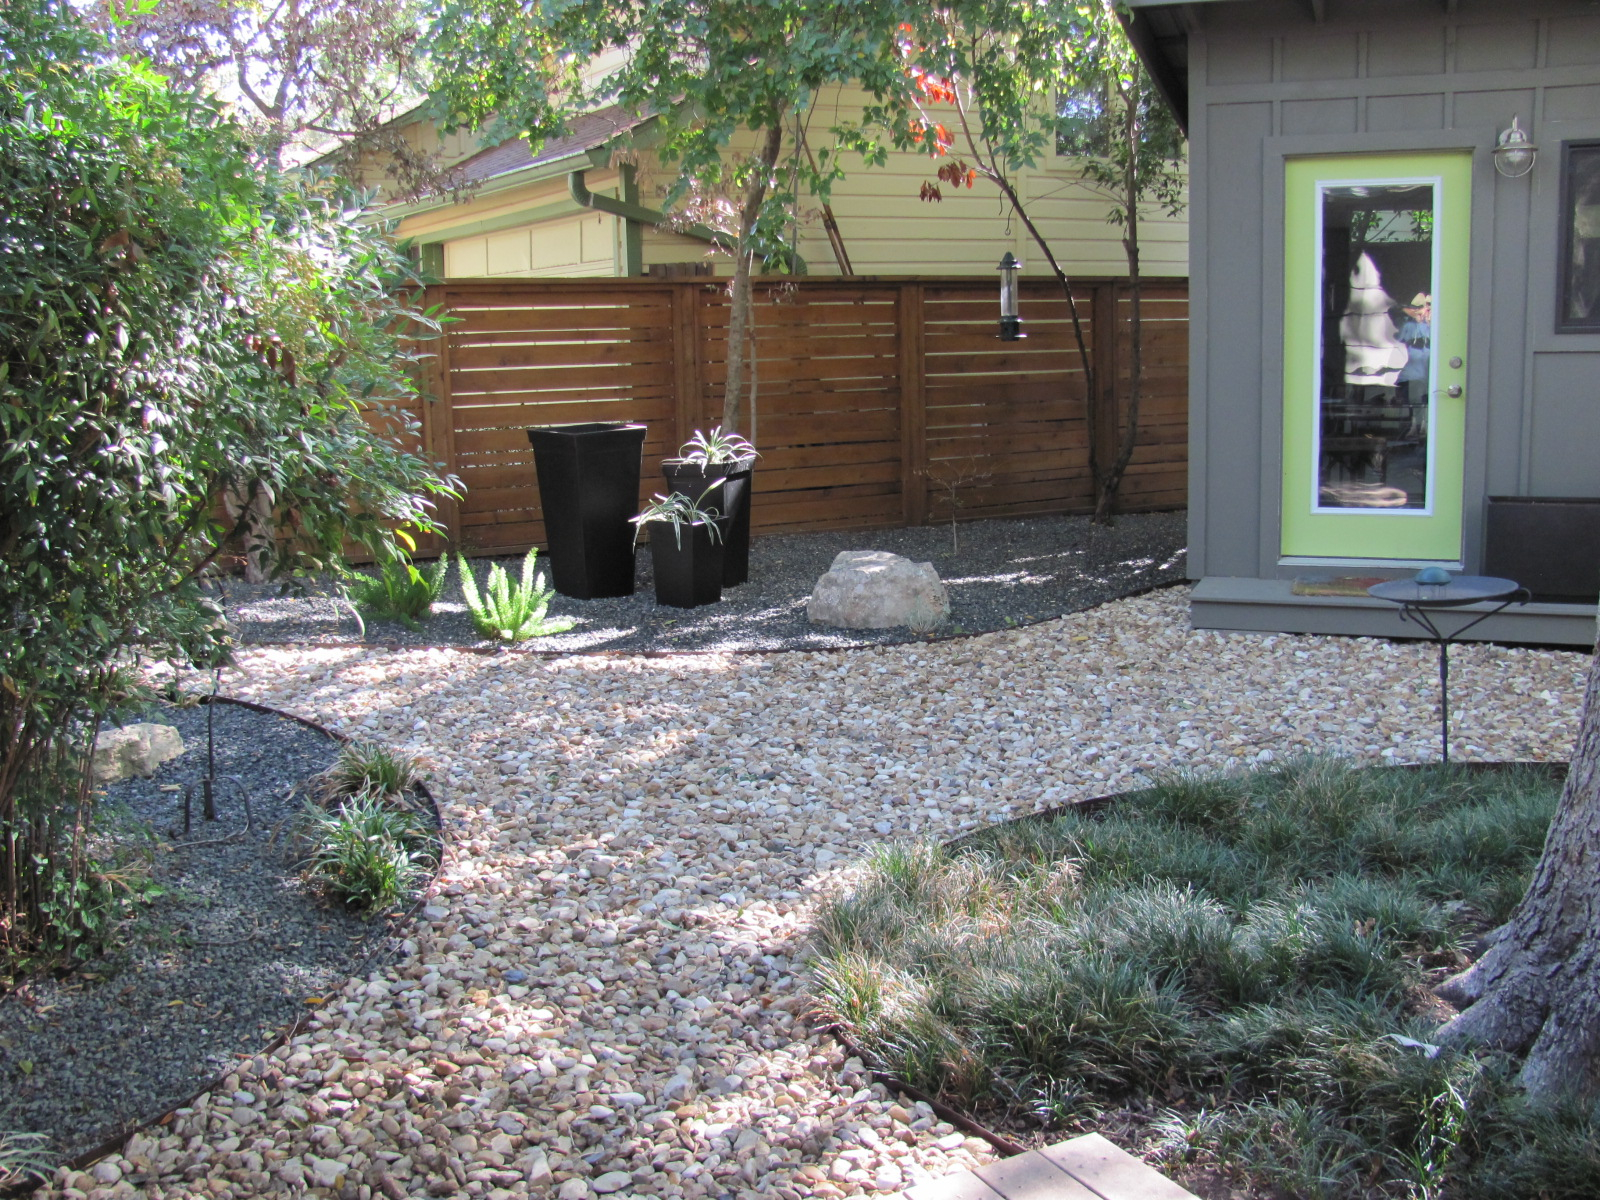 Hardscape Ideas Also With A Hardscape Designs For Backyards Also pertaining to Hardscaping Ideas For Backyards